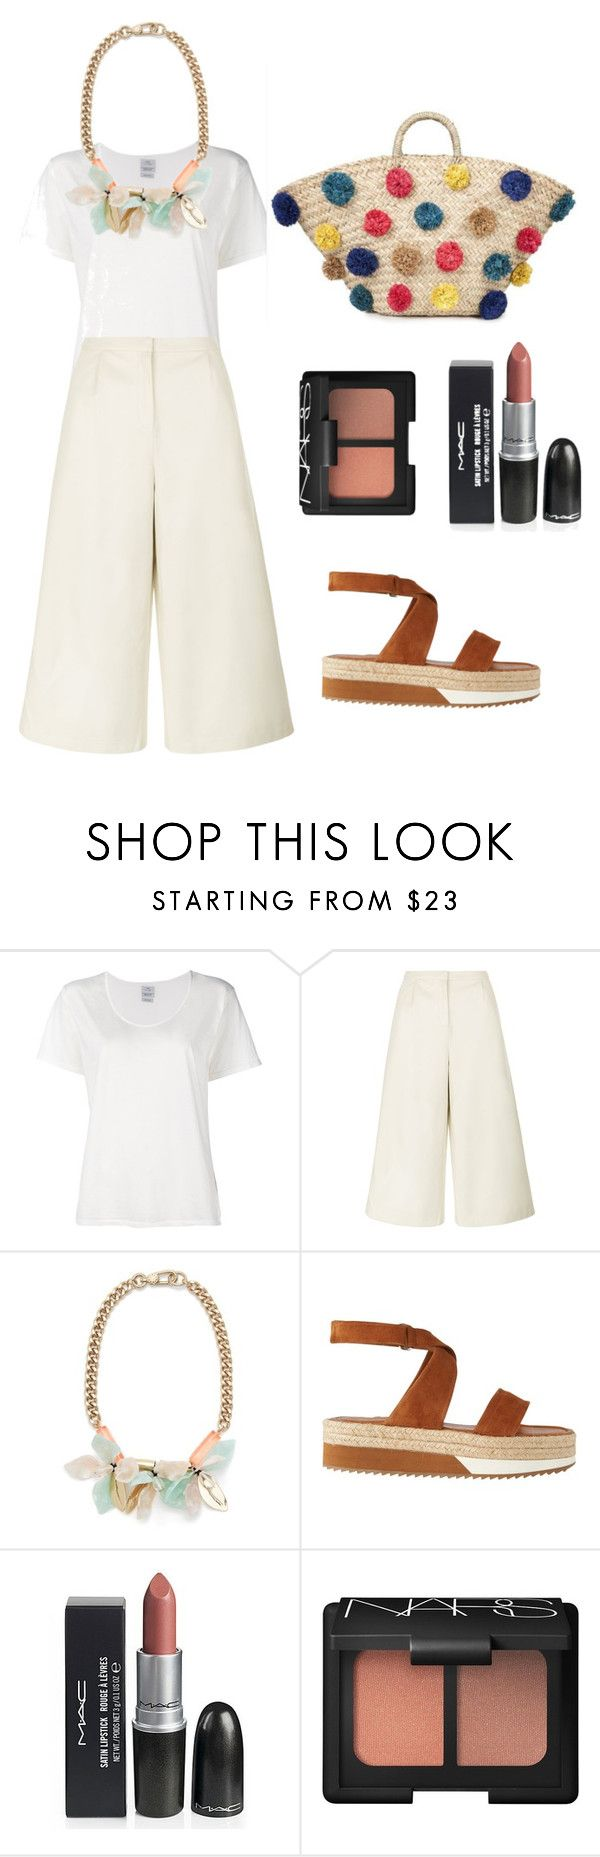 """Basic white tshirt and culotte"" by keypiece ❤ liked on Polyvore featuring Visvim, Traffic People, Whistles, Garcia and NARS Cosmetics"